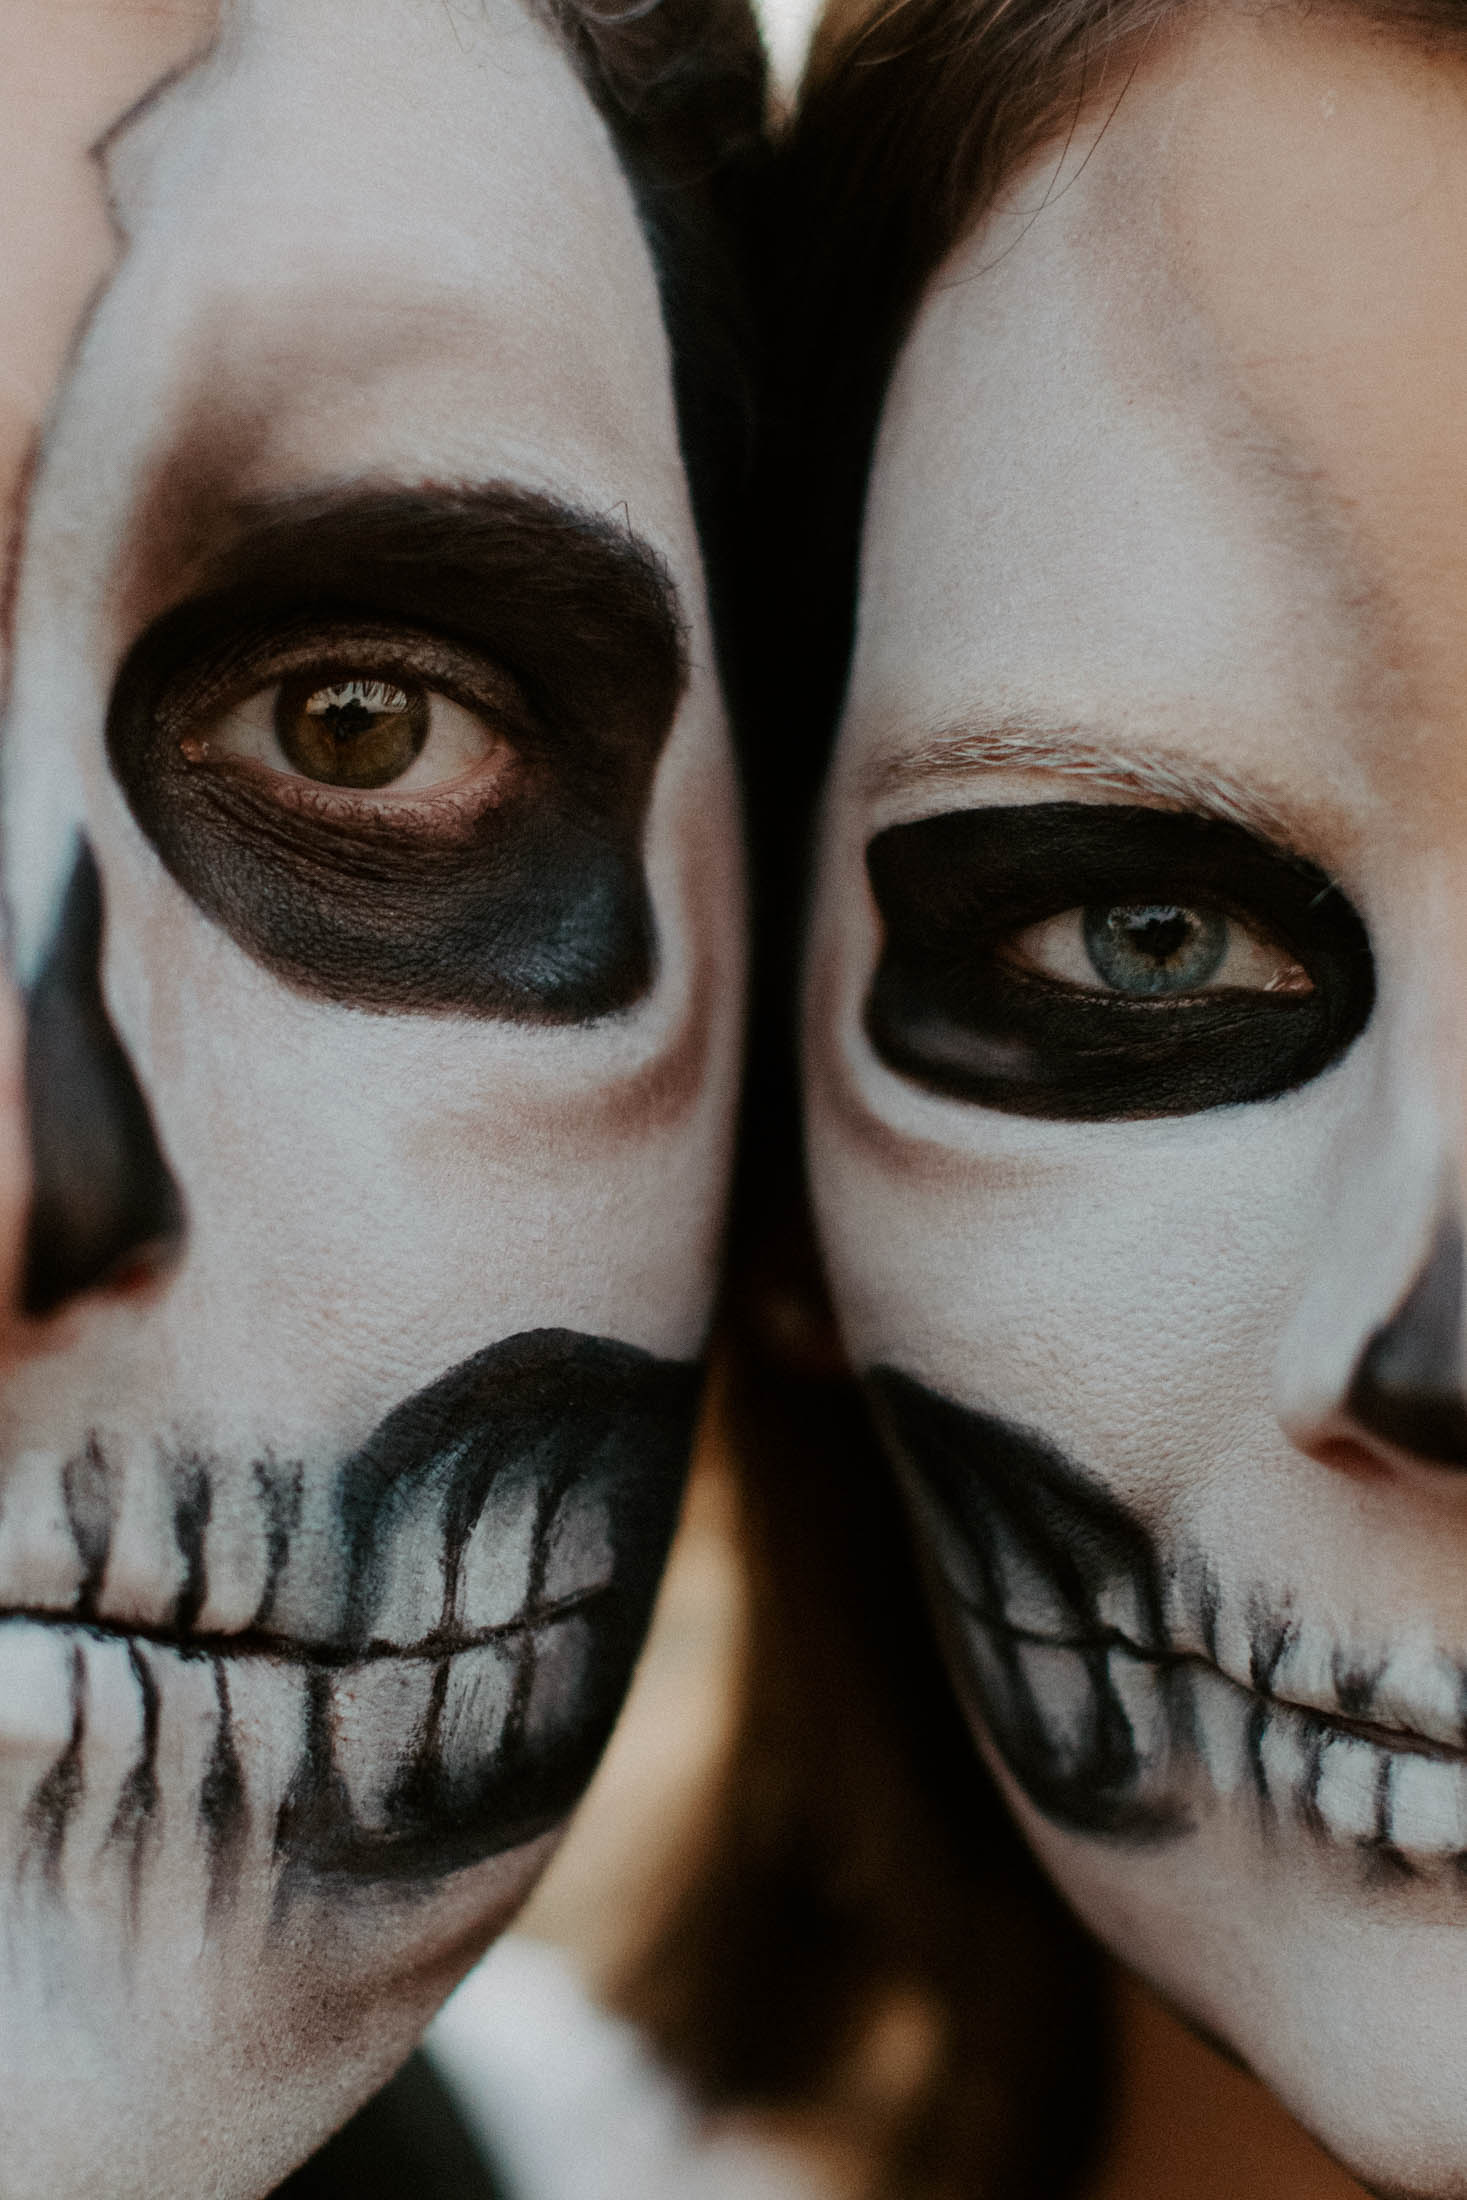 couple wearing skull makeup for halloween photography session sitting next to each other